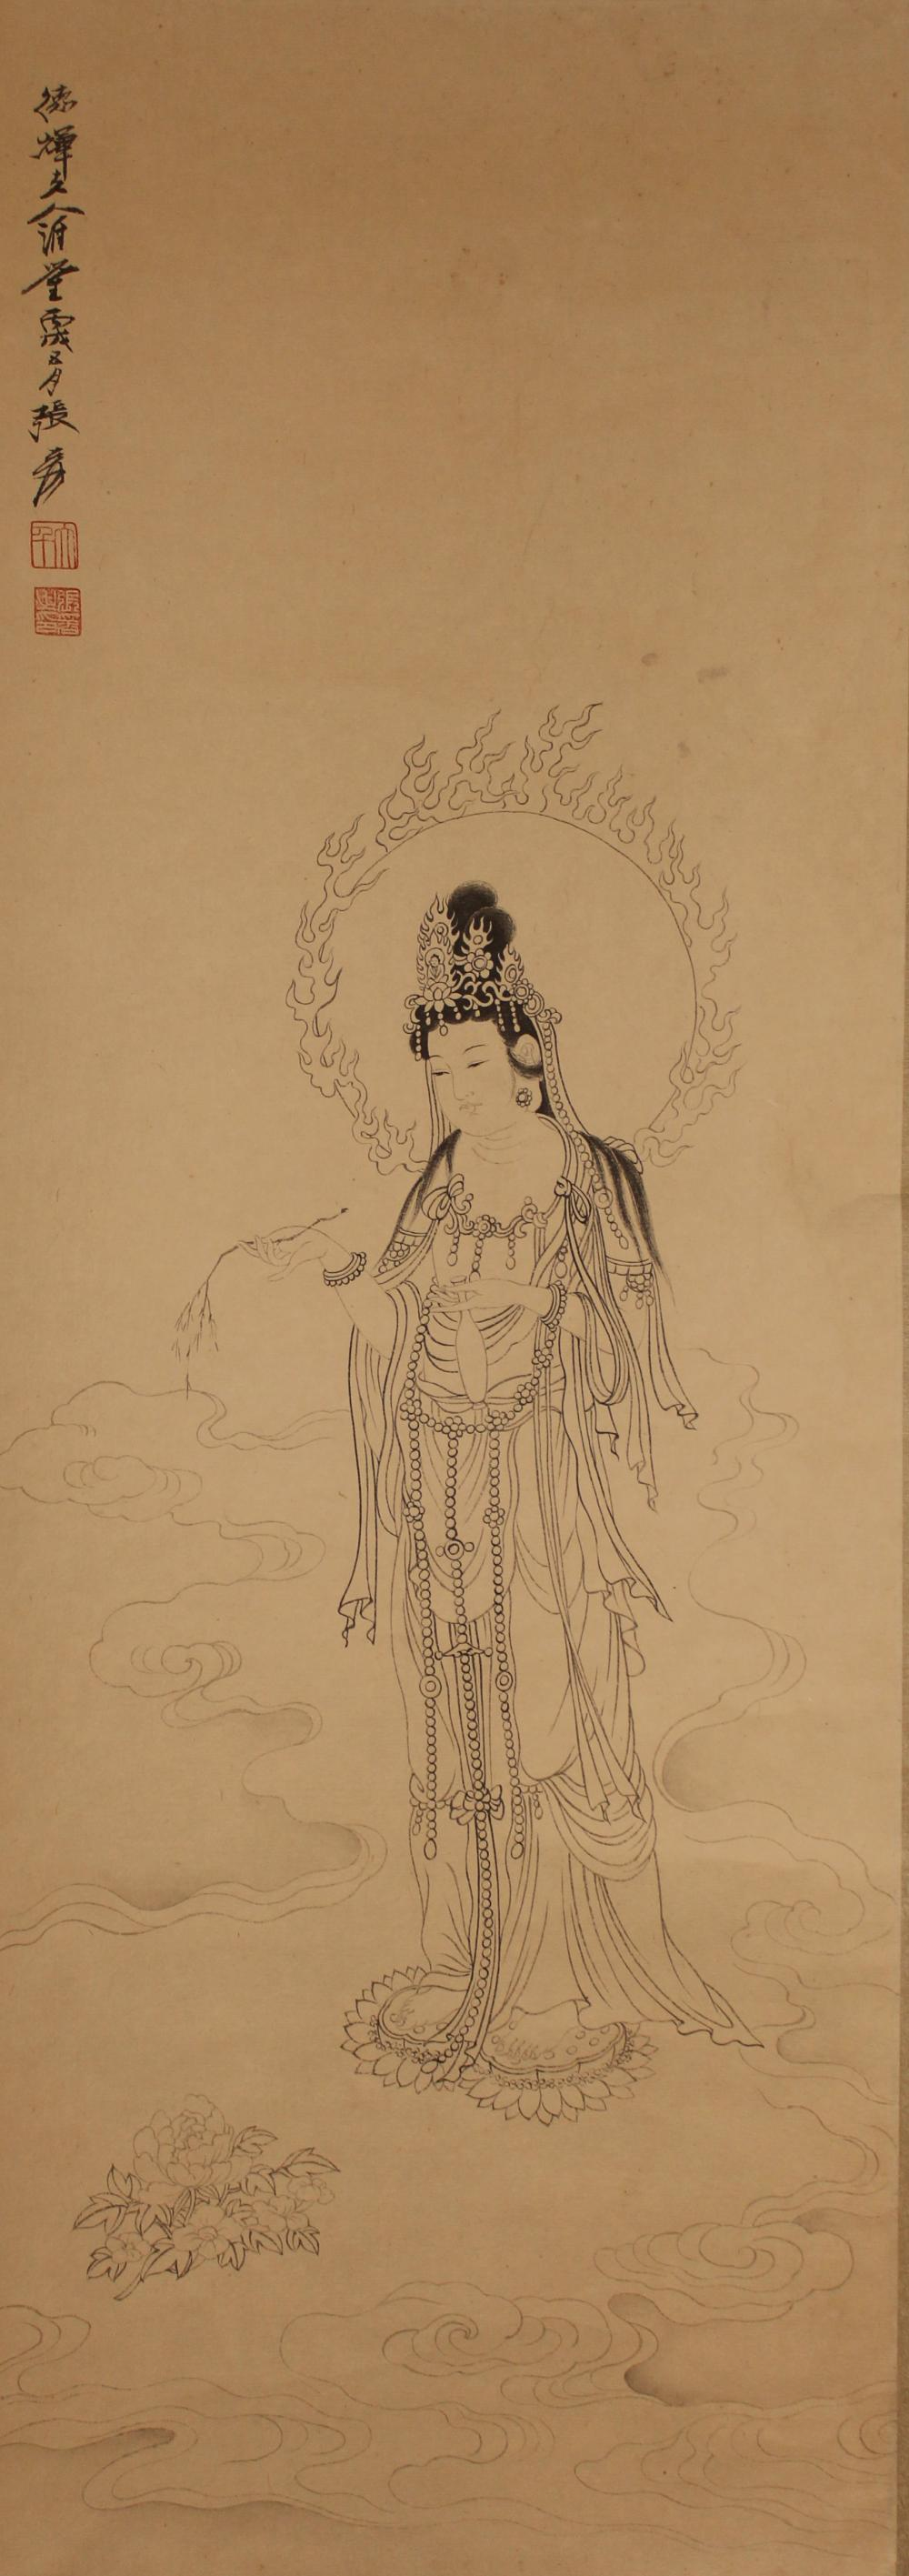 A Chinese Abstract-style Poetry-framing Guanyin Display Scroll